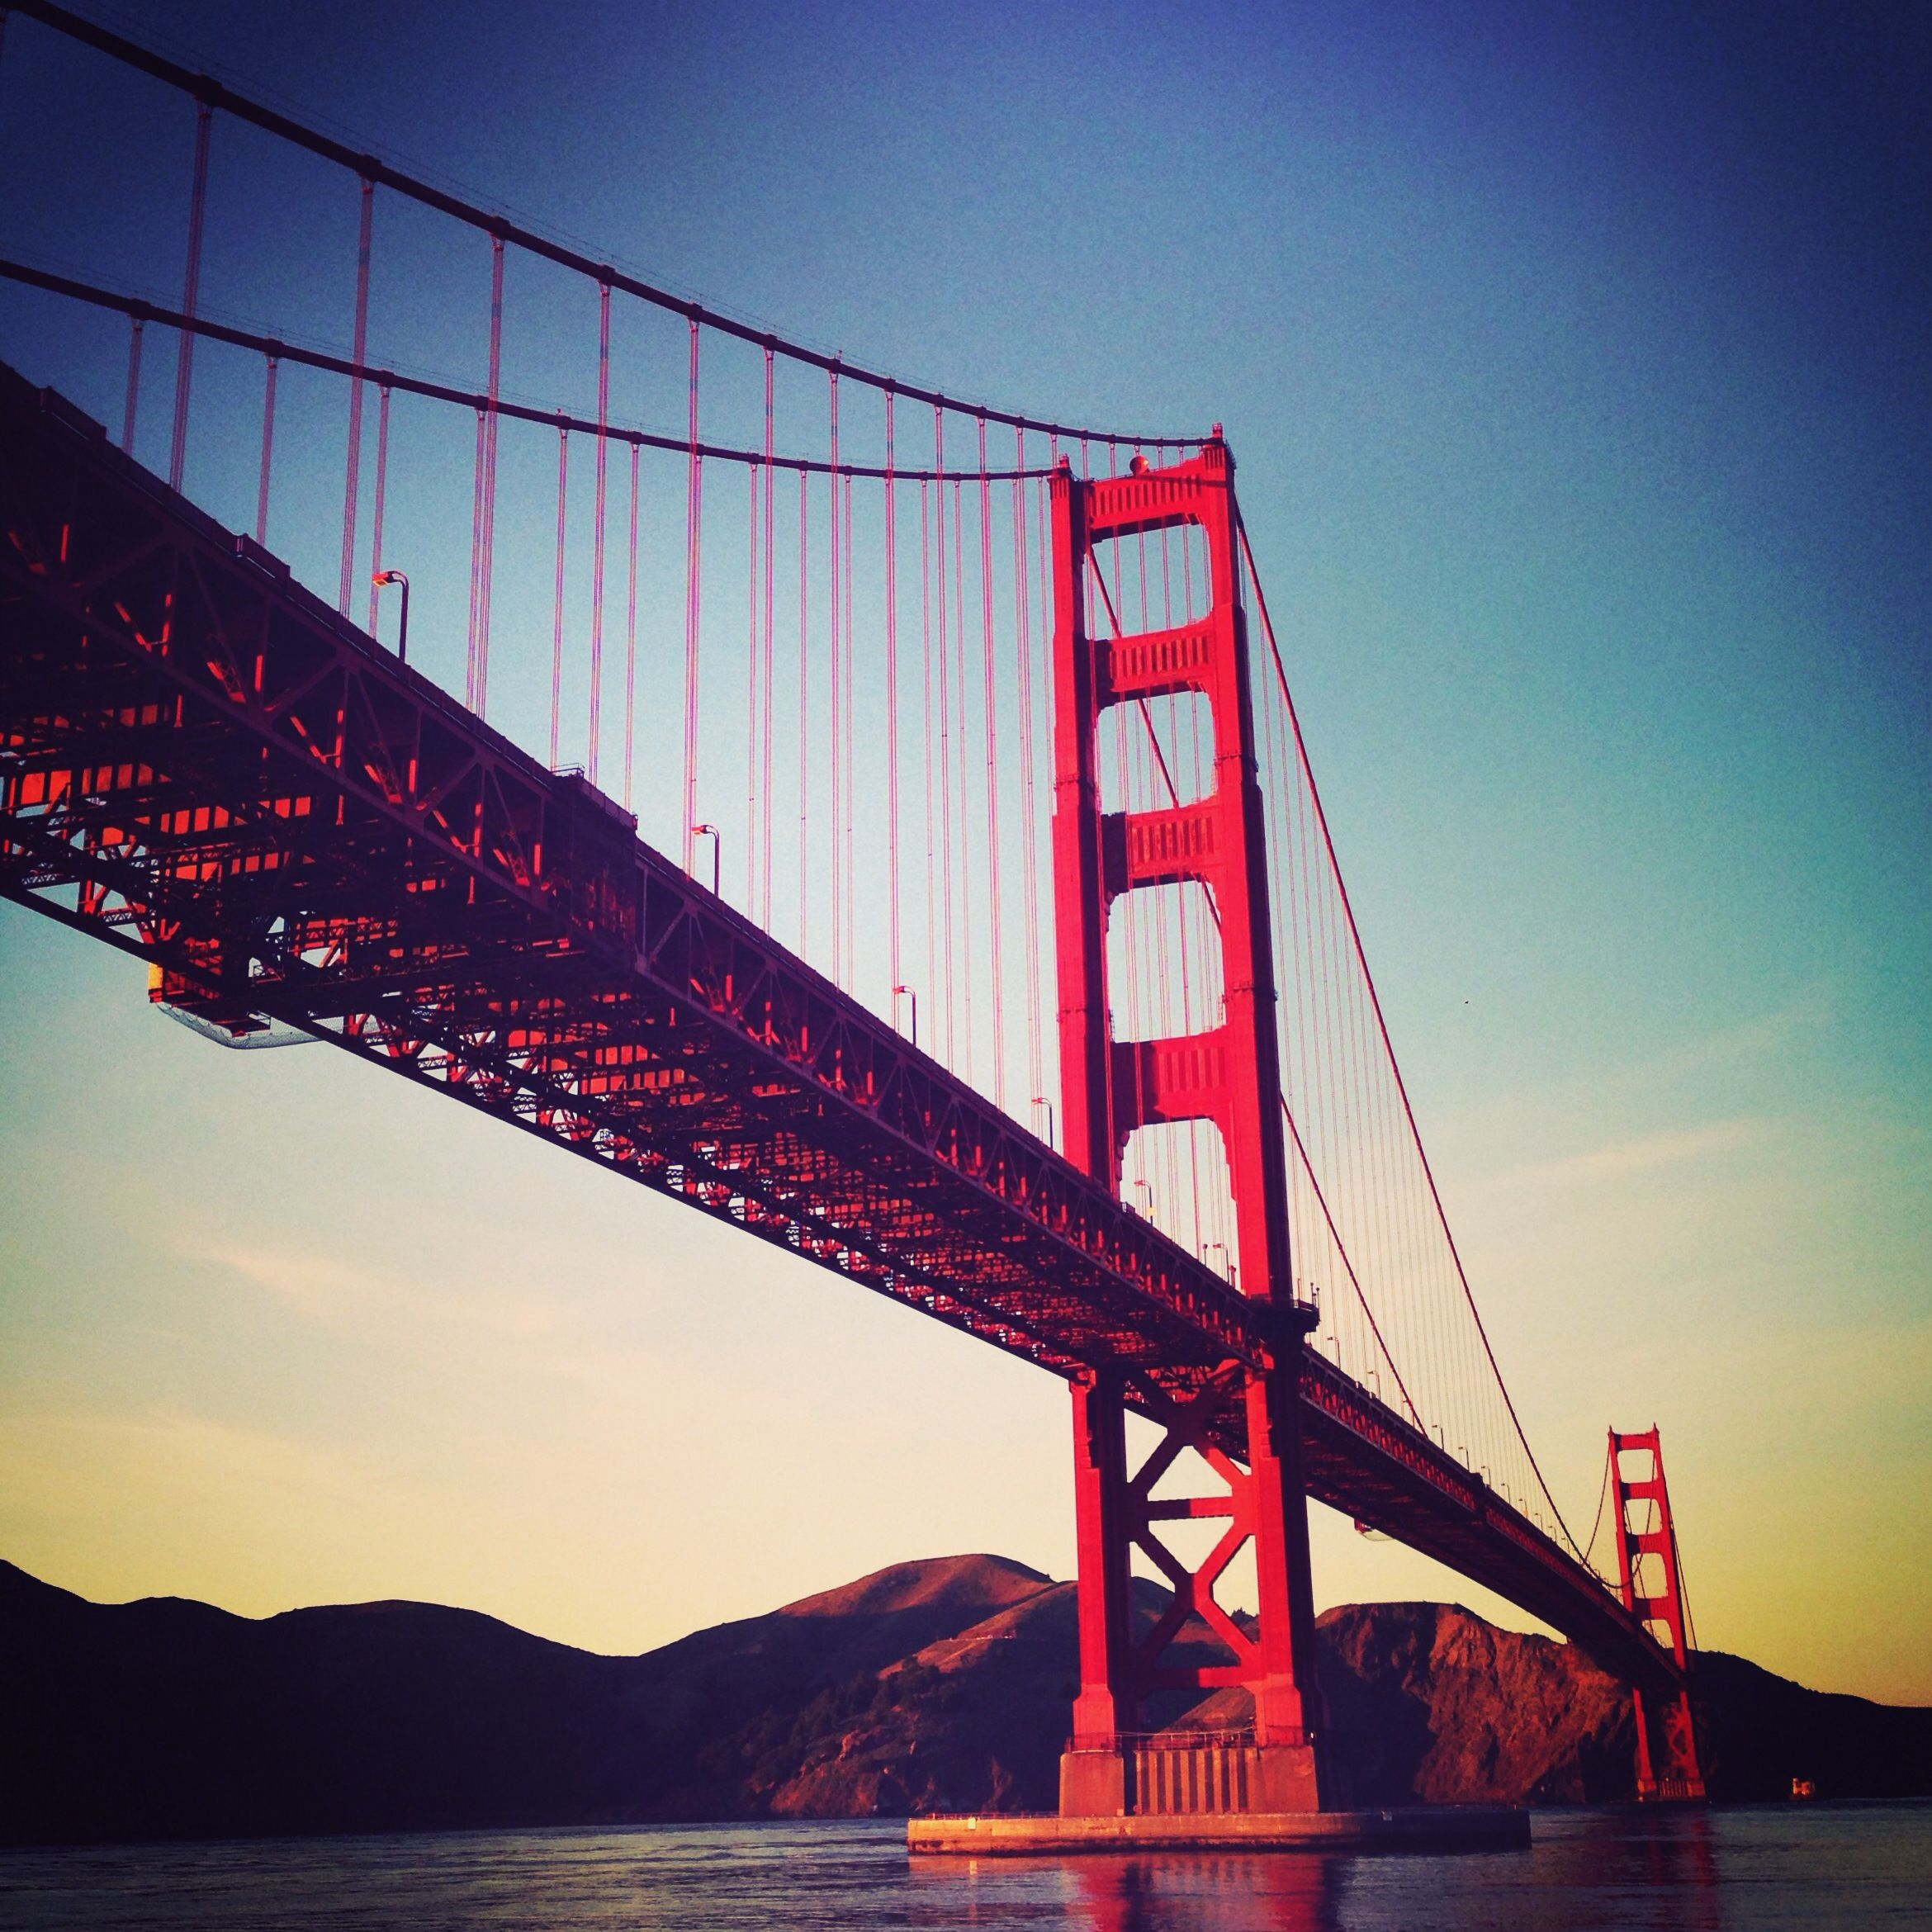 Goldie from Fort Point, SF